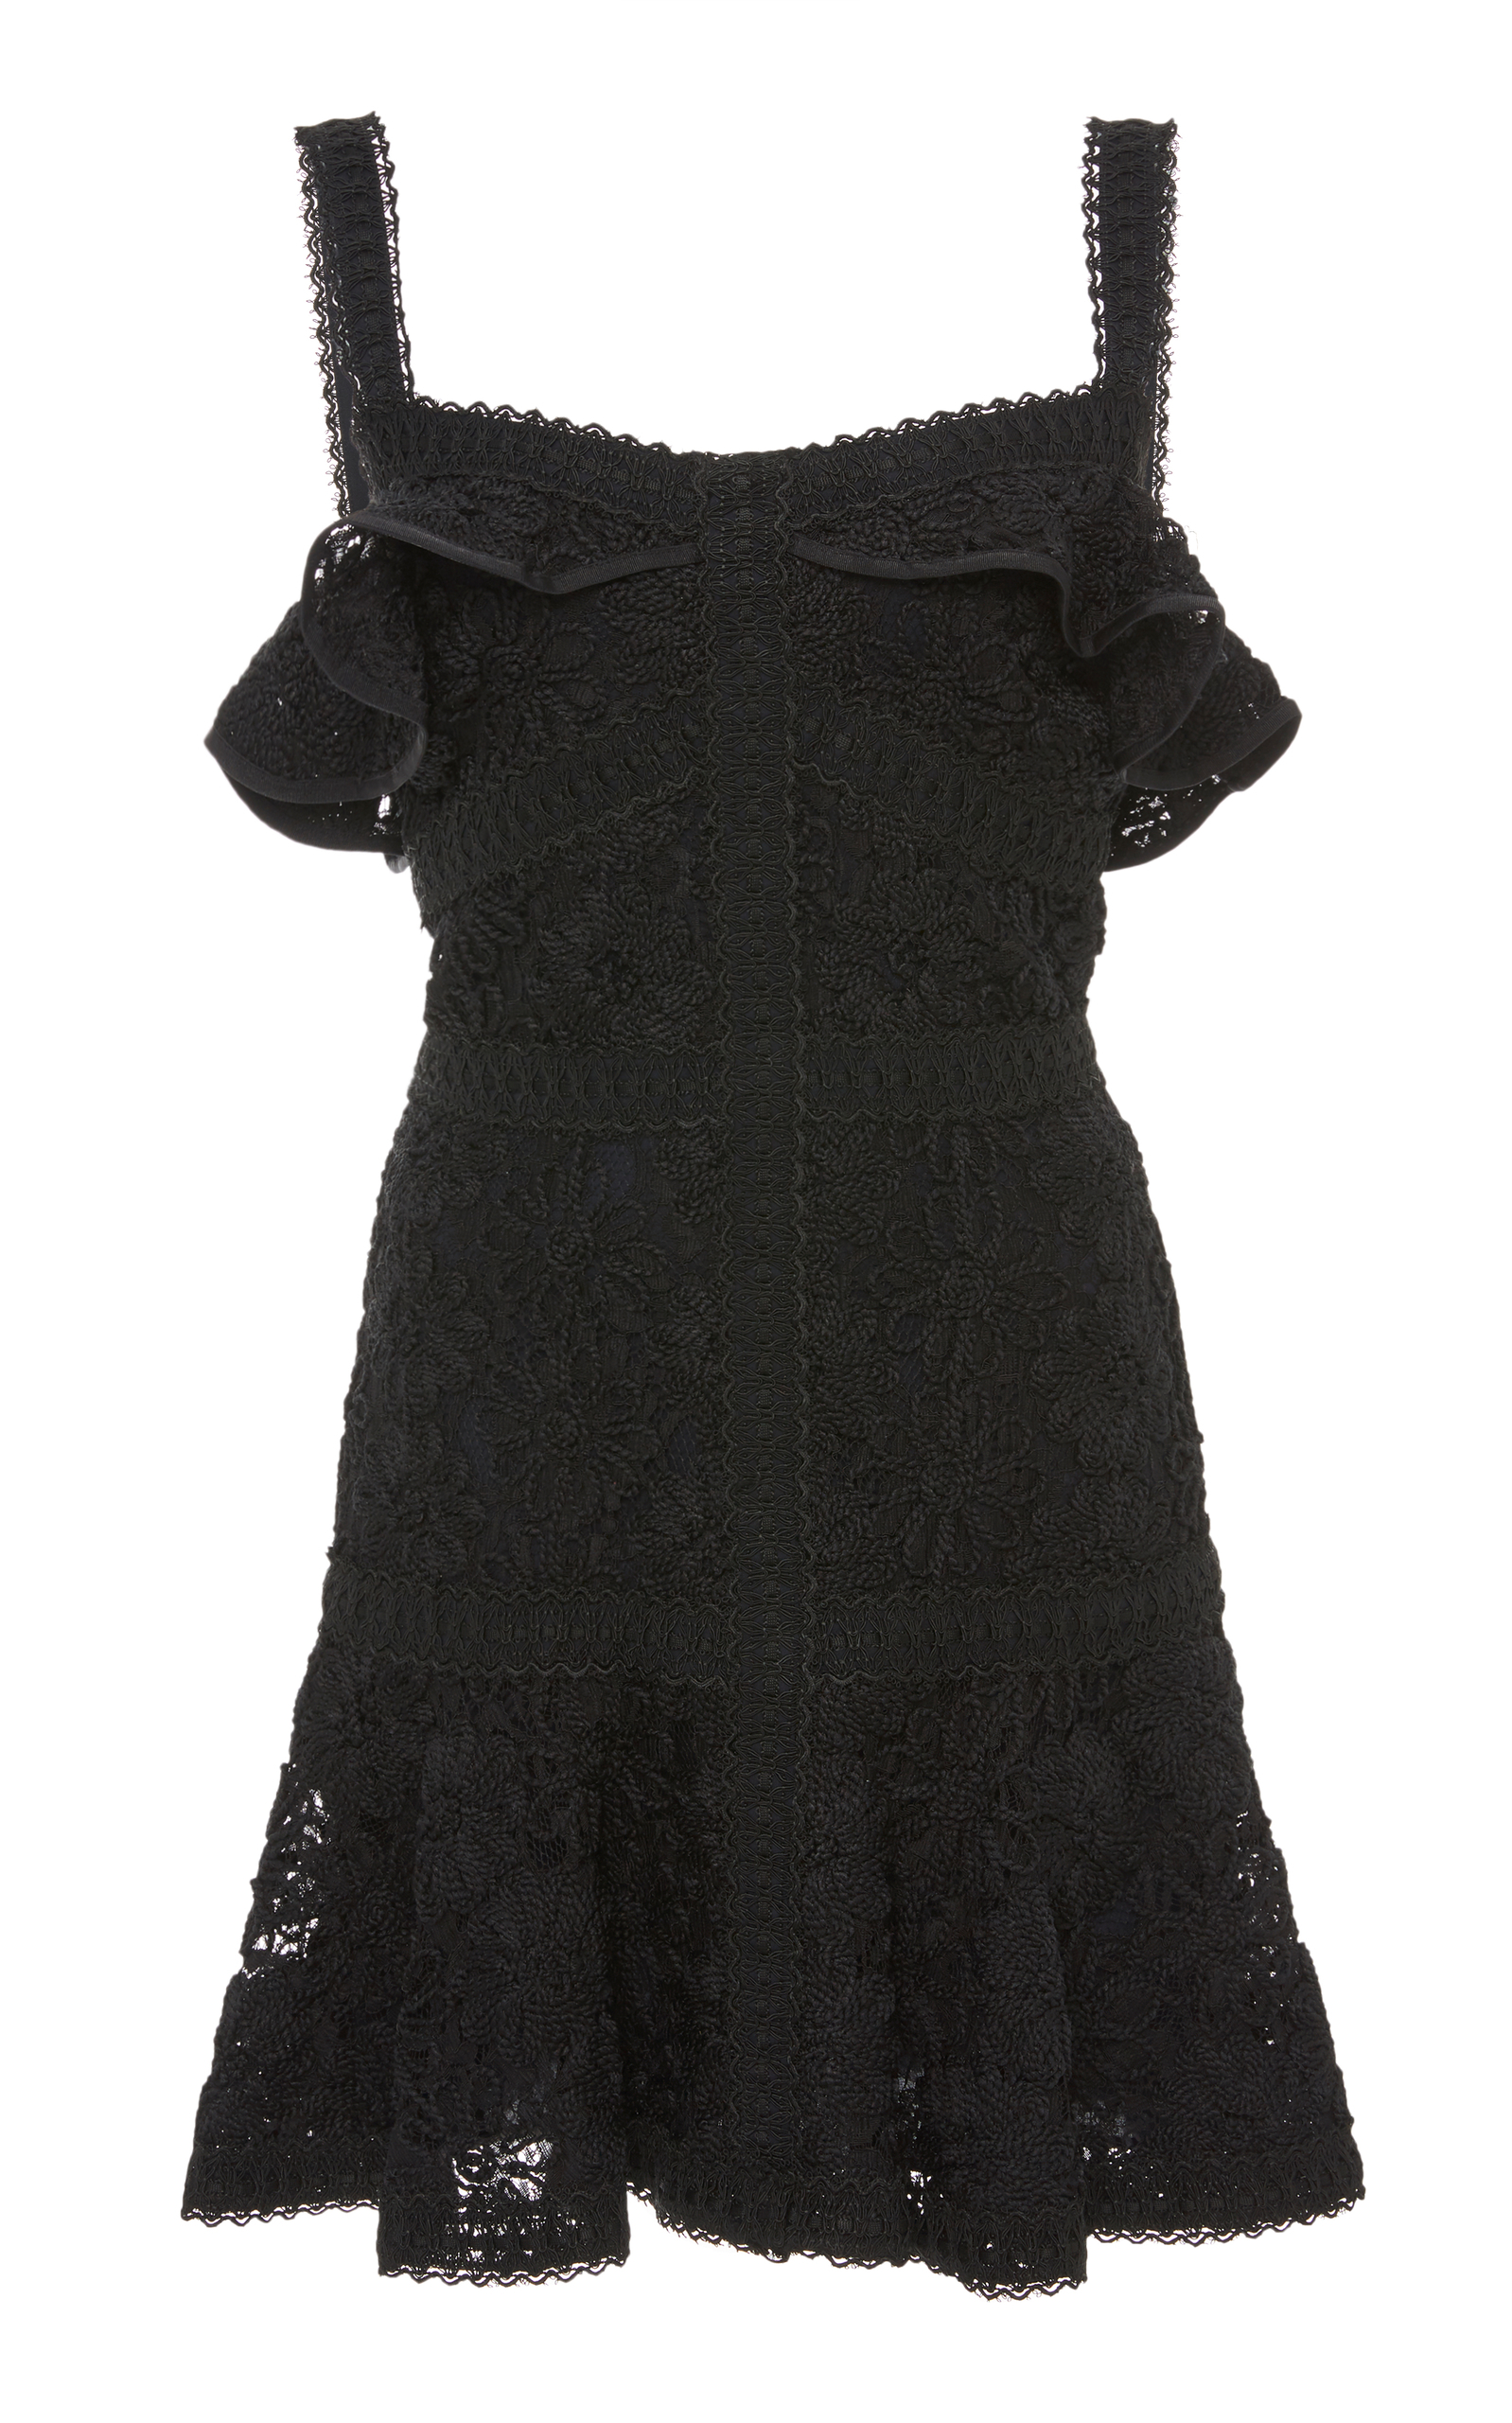 Alexis Linzi Lace Ruffle Mini Dress, Black